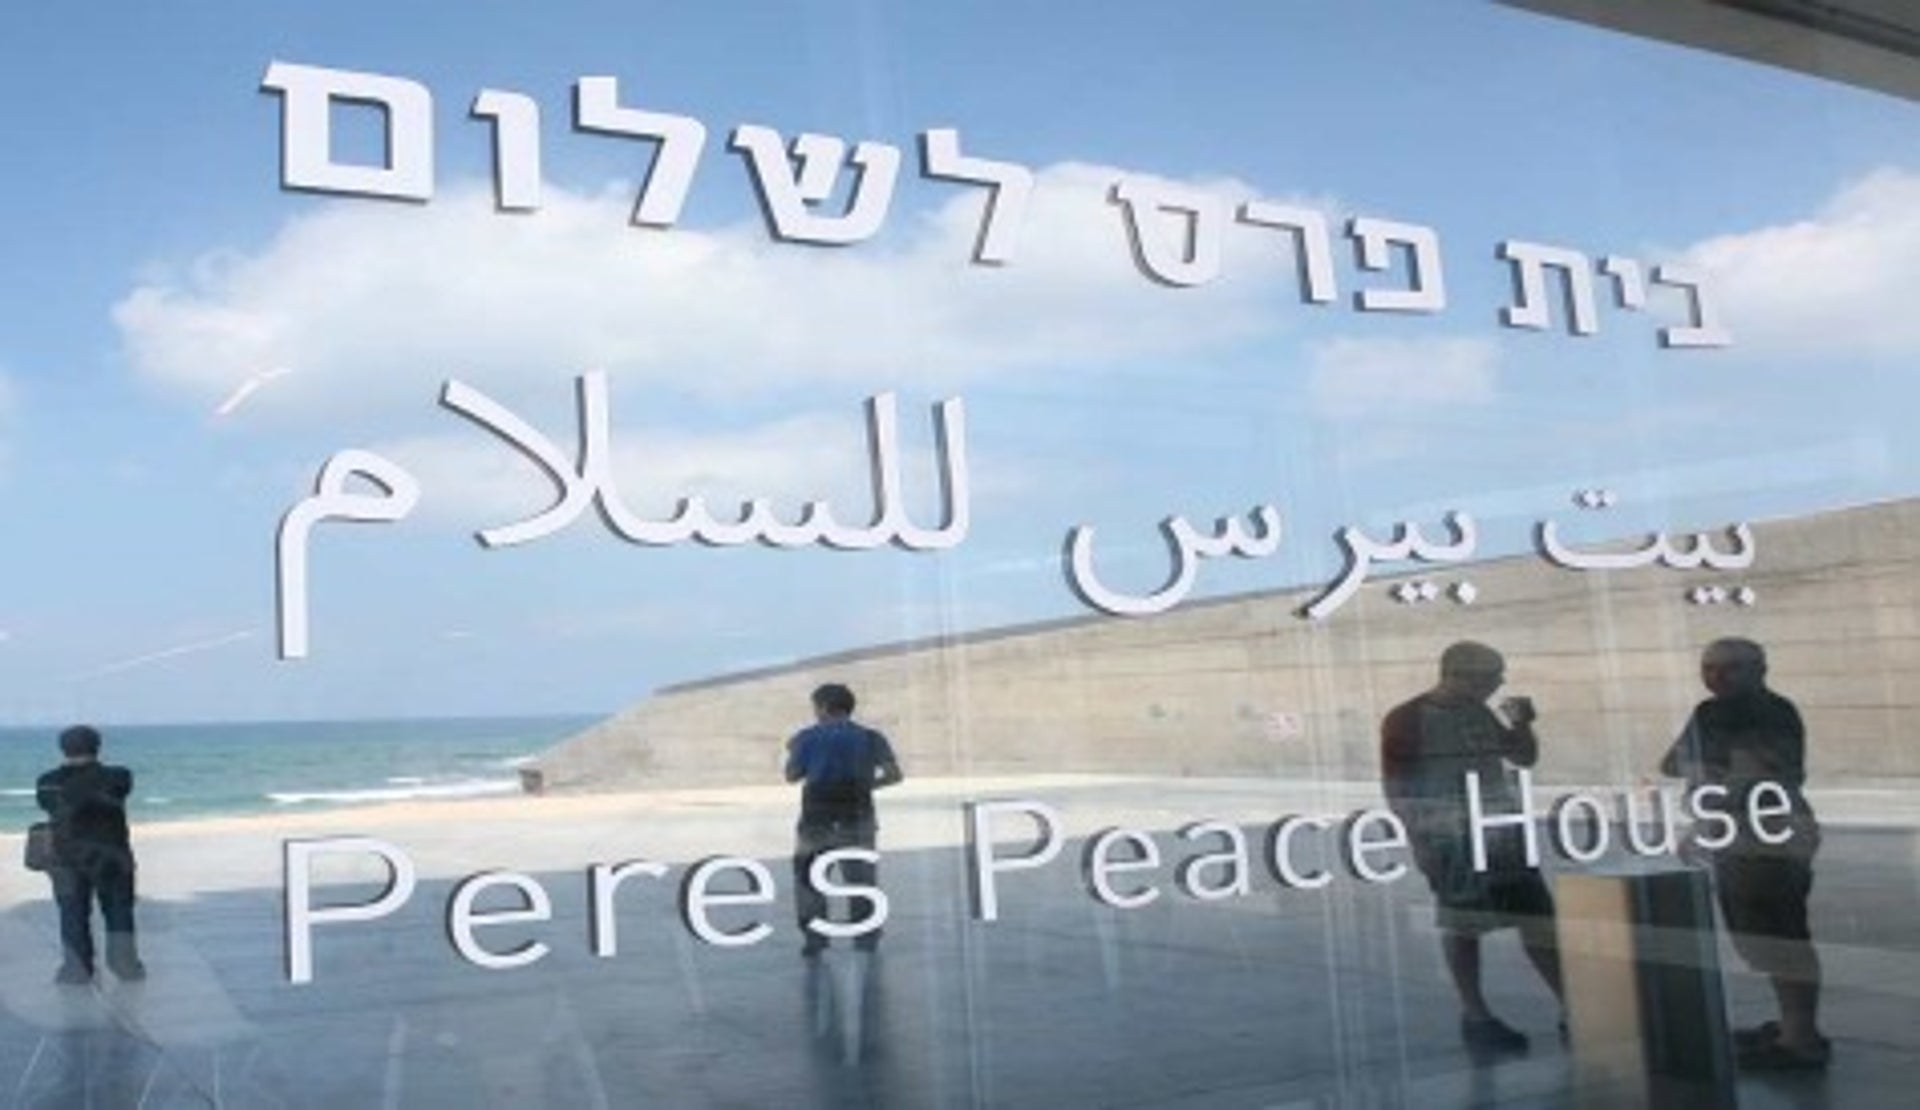 Peres Center for Peace in Jaffa.